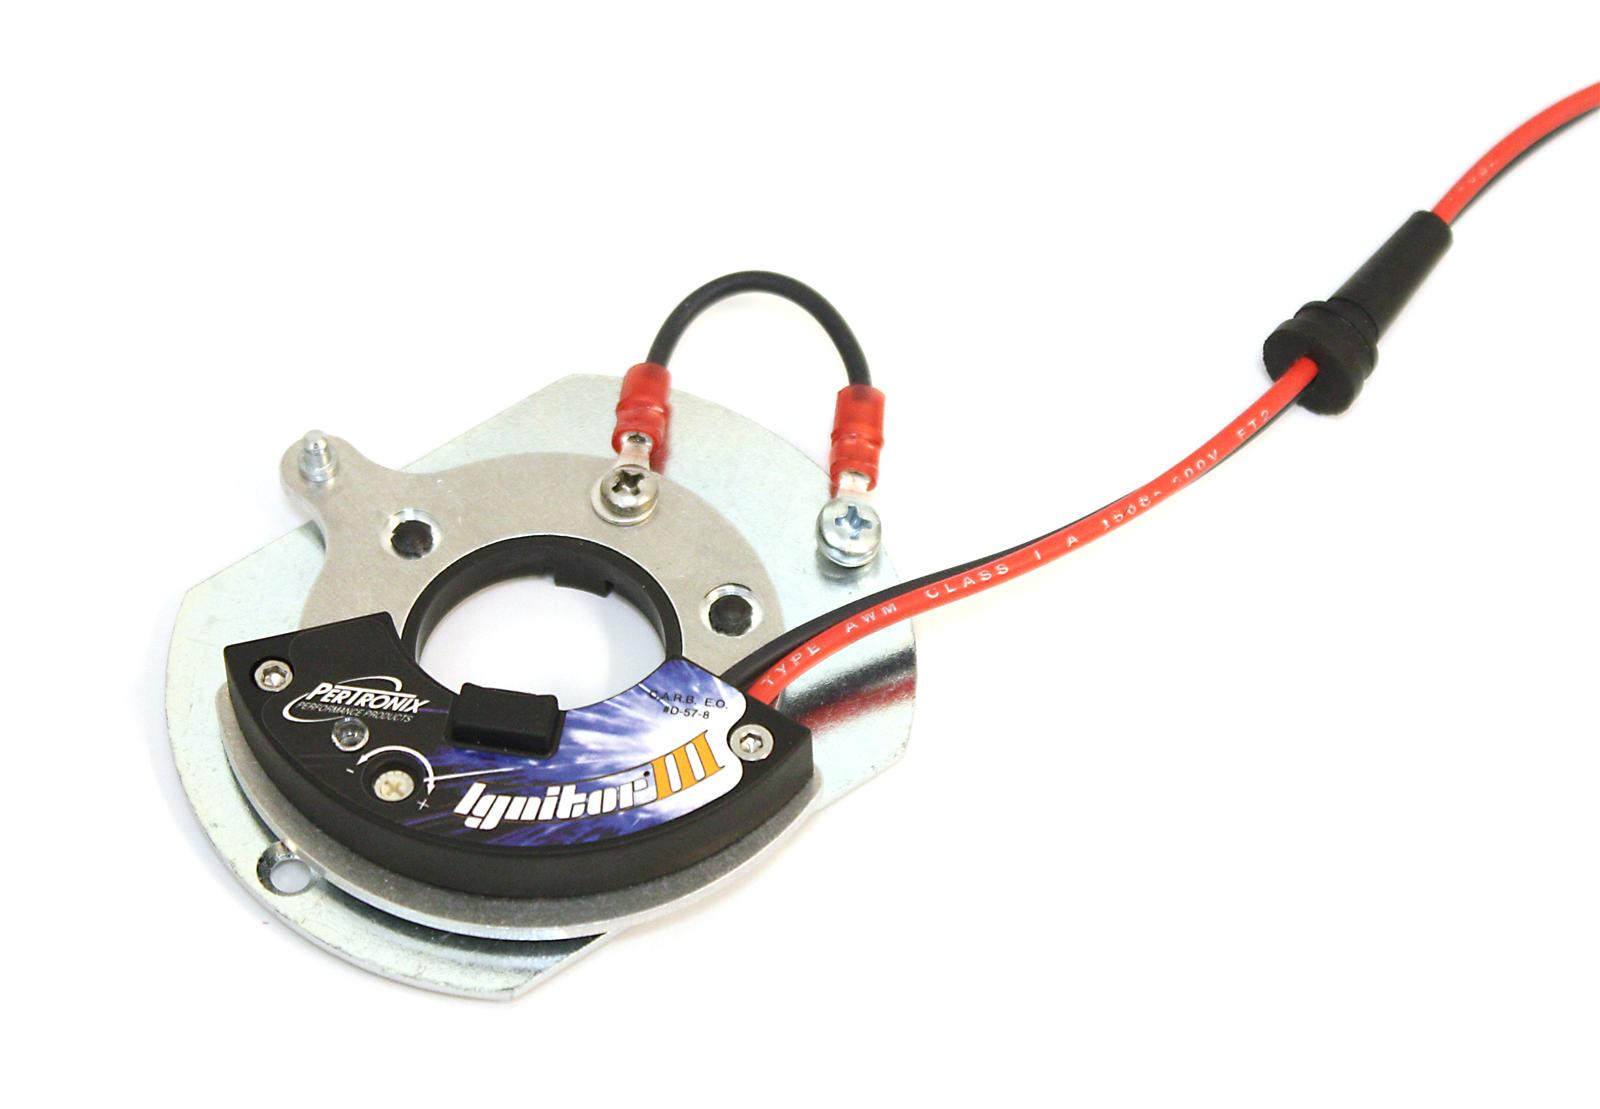 hight resolution of pertronix ignitor iii solid state ignition systems 71281 free shipping on orders over 99 at summit racing